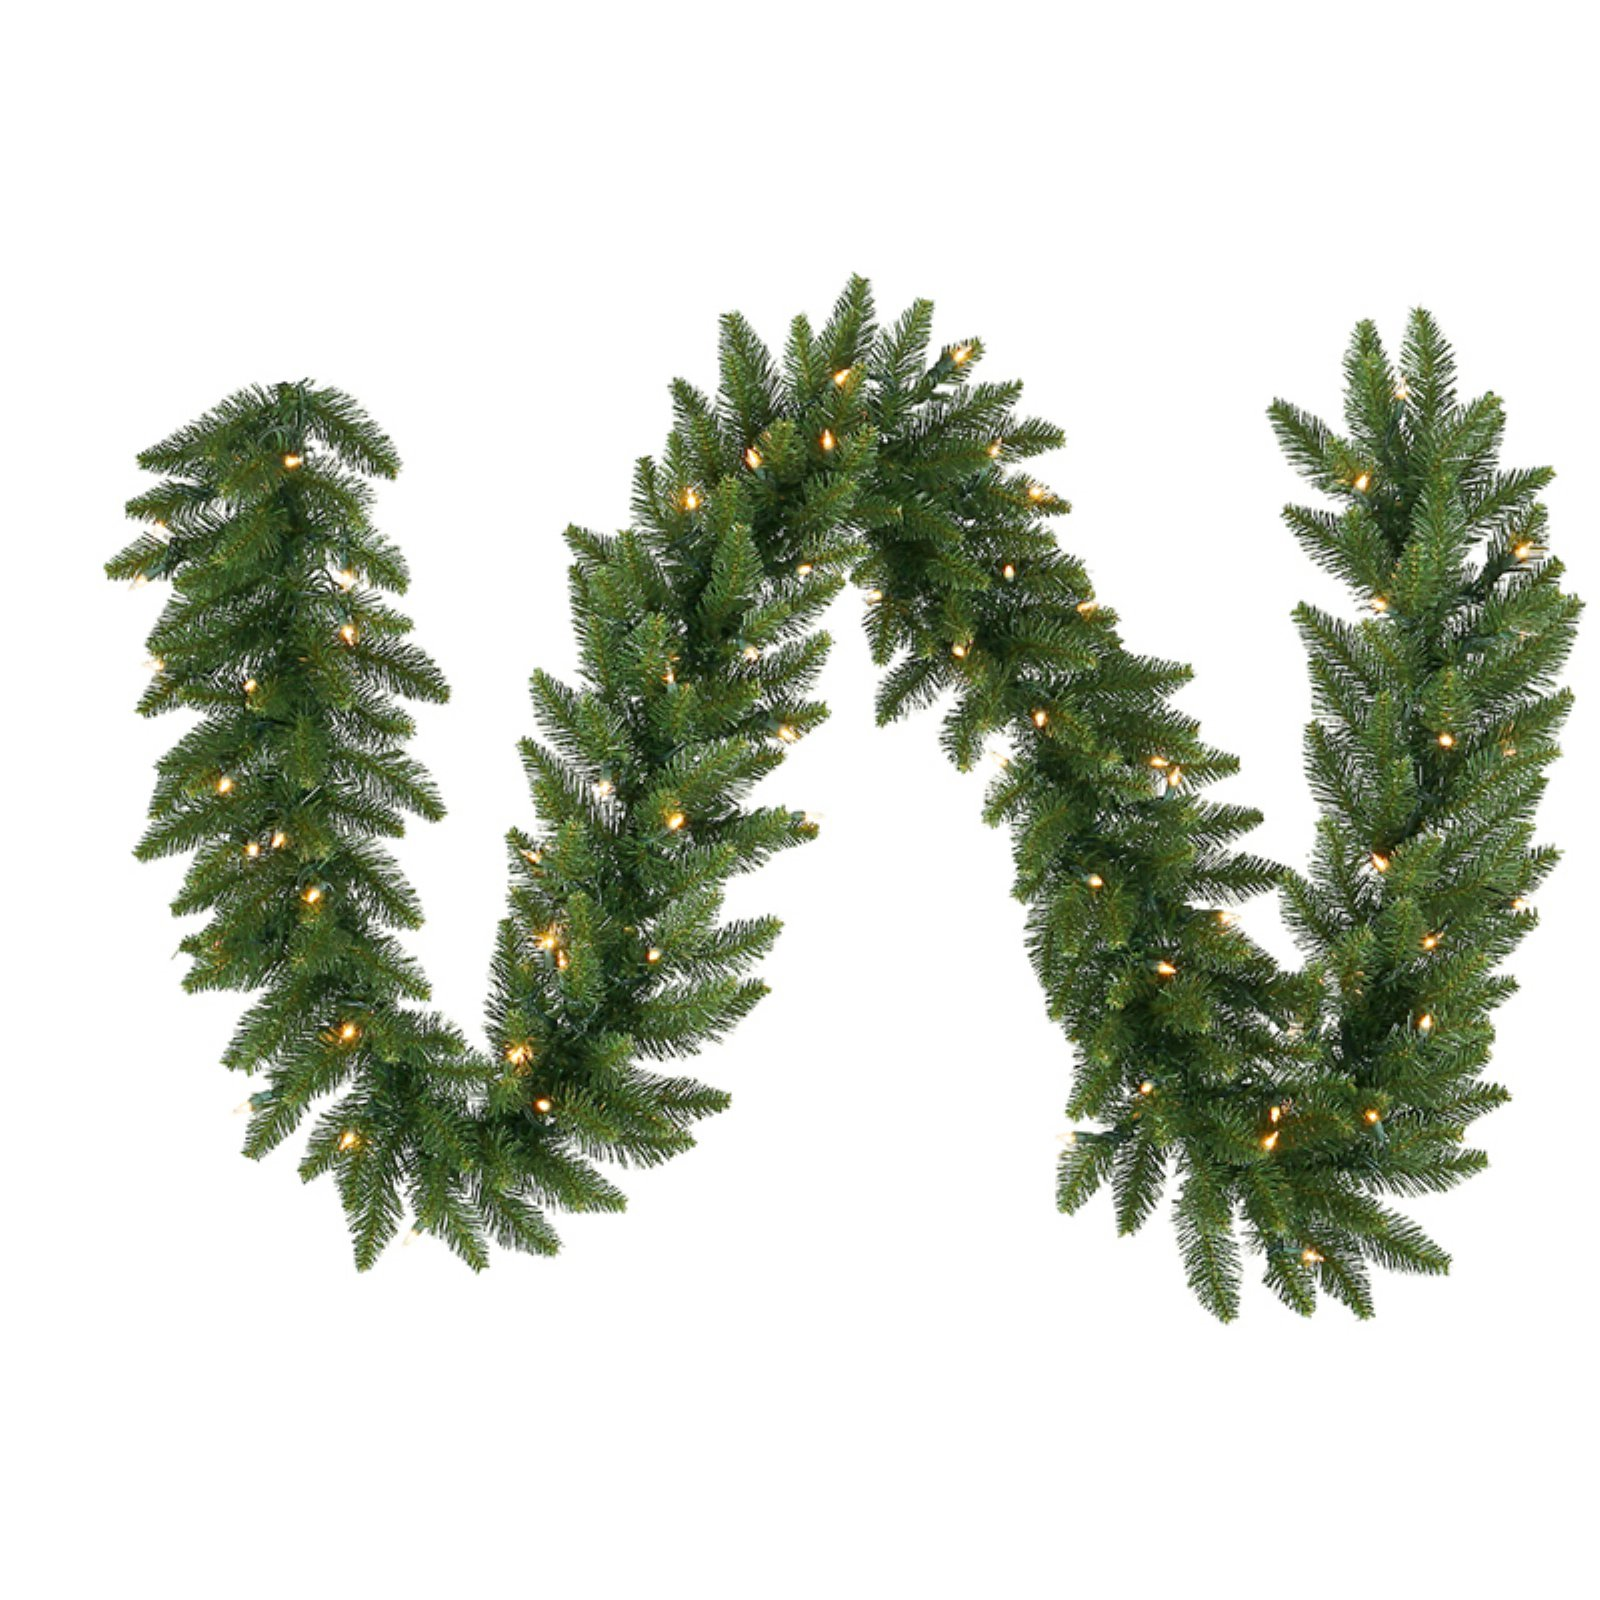 12 in. x 9 ft. Camdon Fir Pre-lit Garland